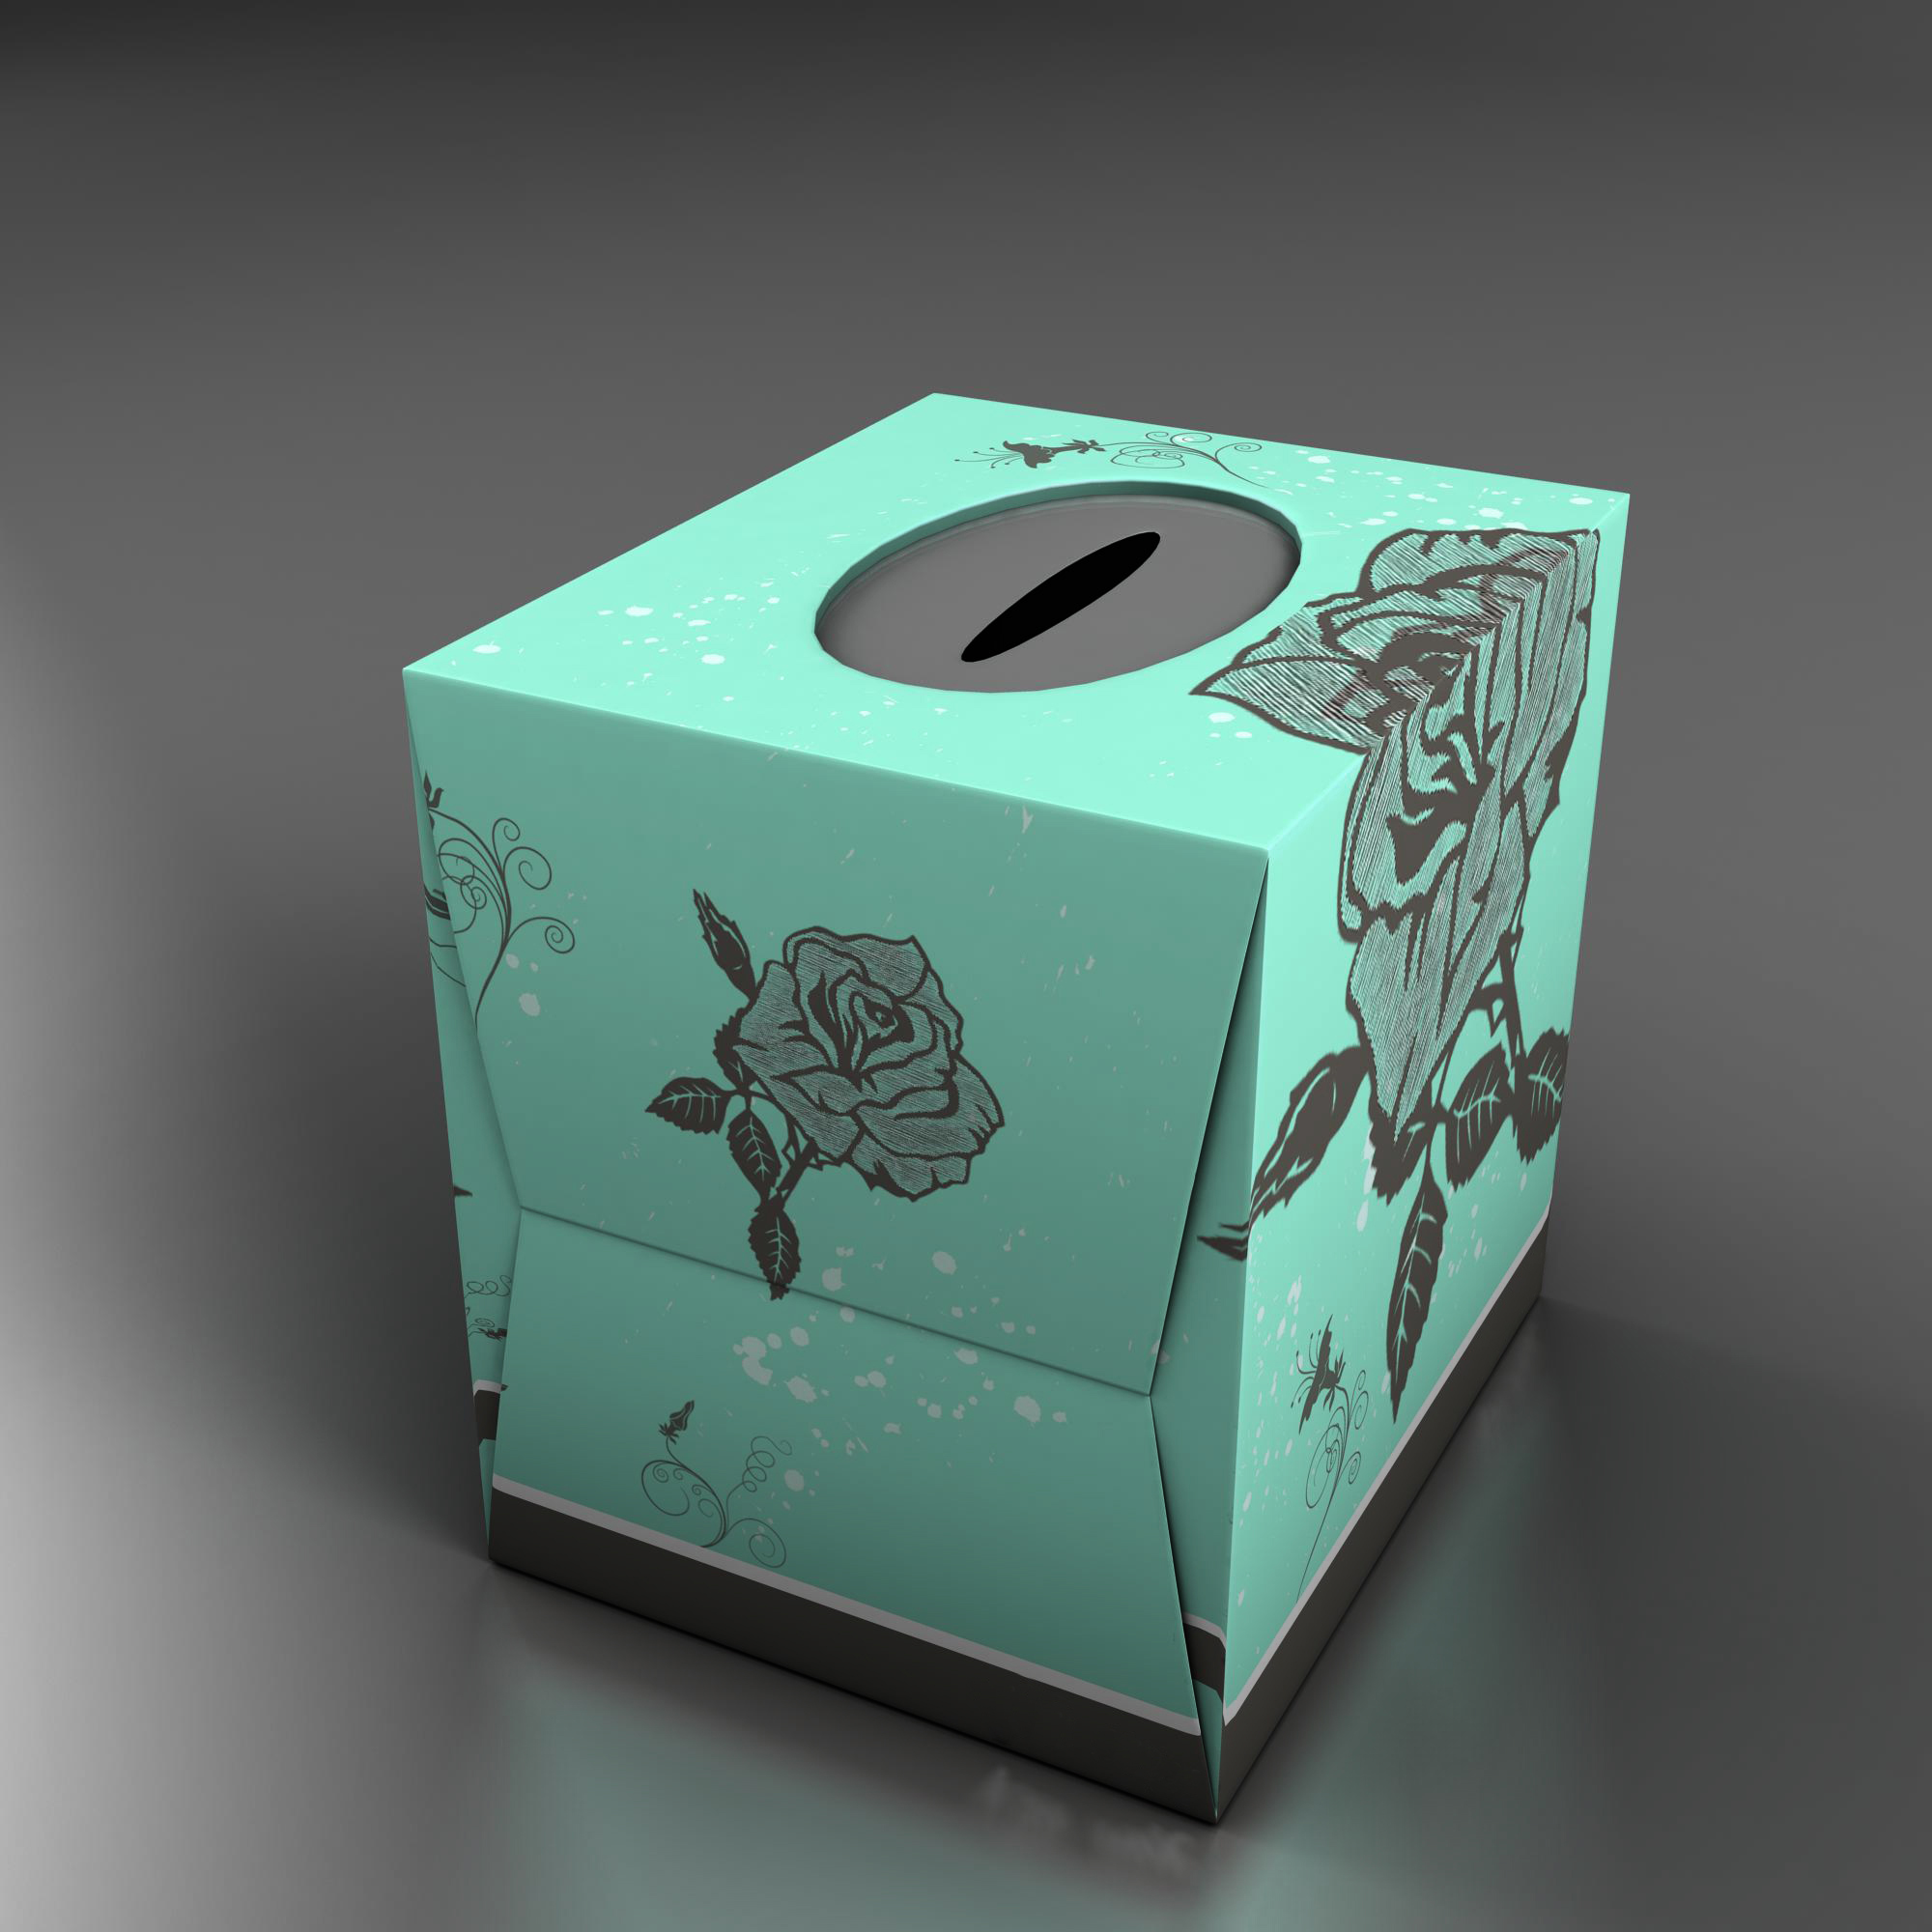 teal tissue box with roses 3d model 3ds max fbx ma mb obj 157245